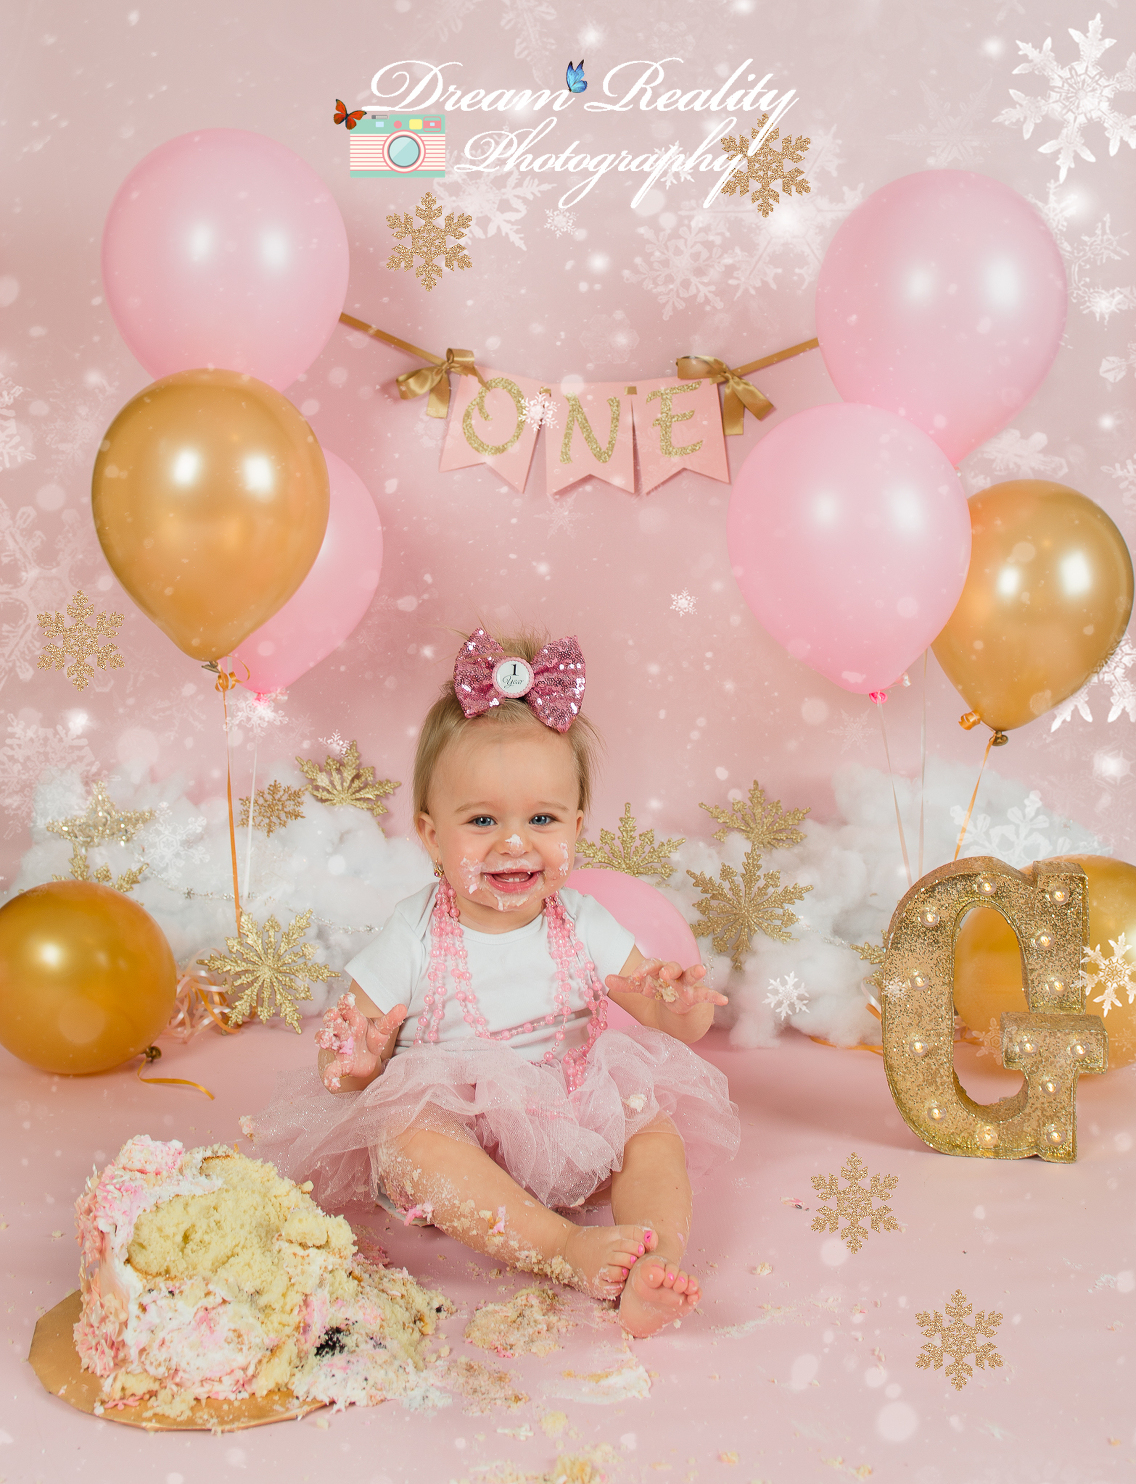 Awe Inspiring Winter Snowflakes And Pink First Birthday Girl Cake Smash Howell Funny Birthday Cards Online Barepcheapnameinfo